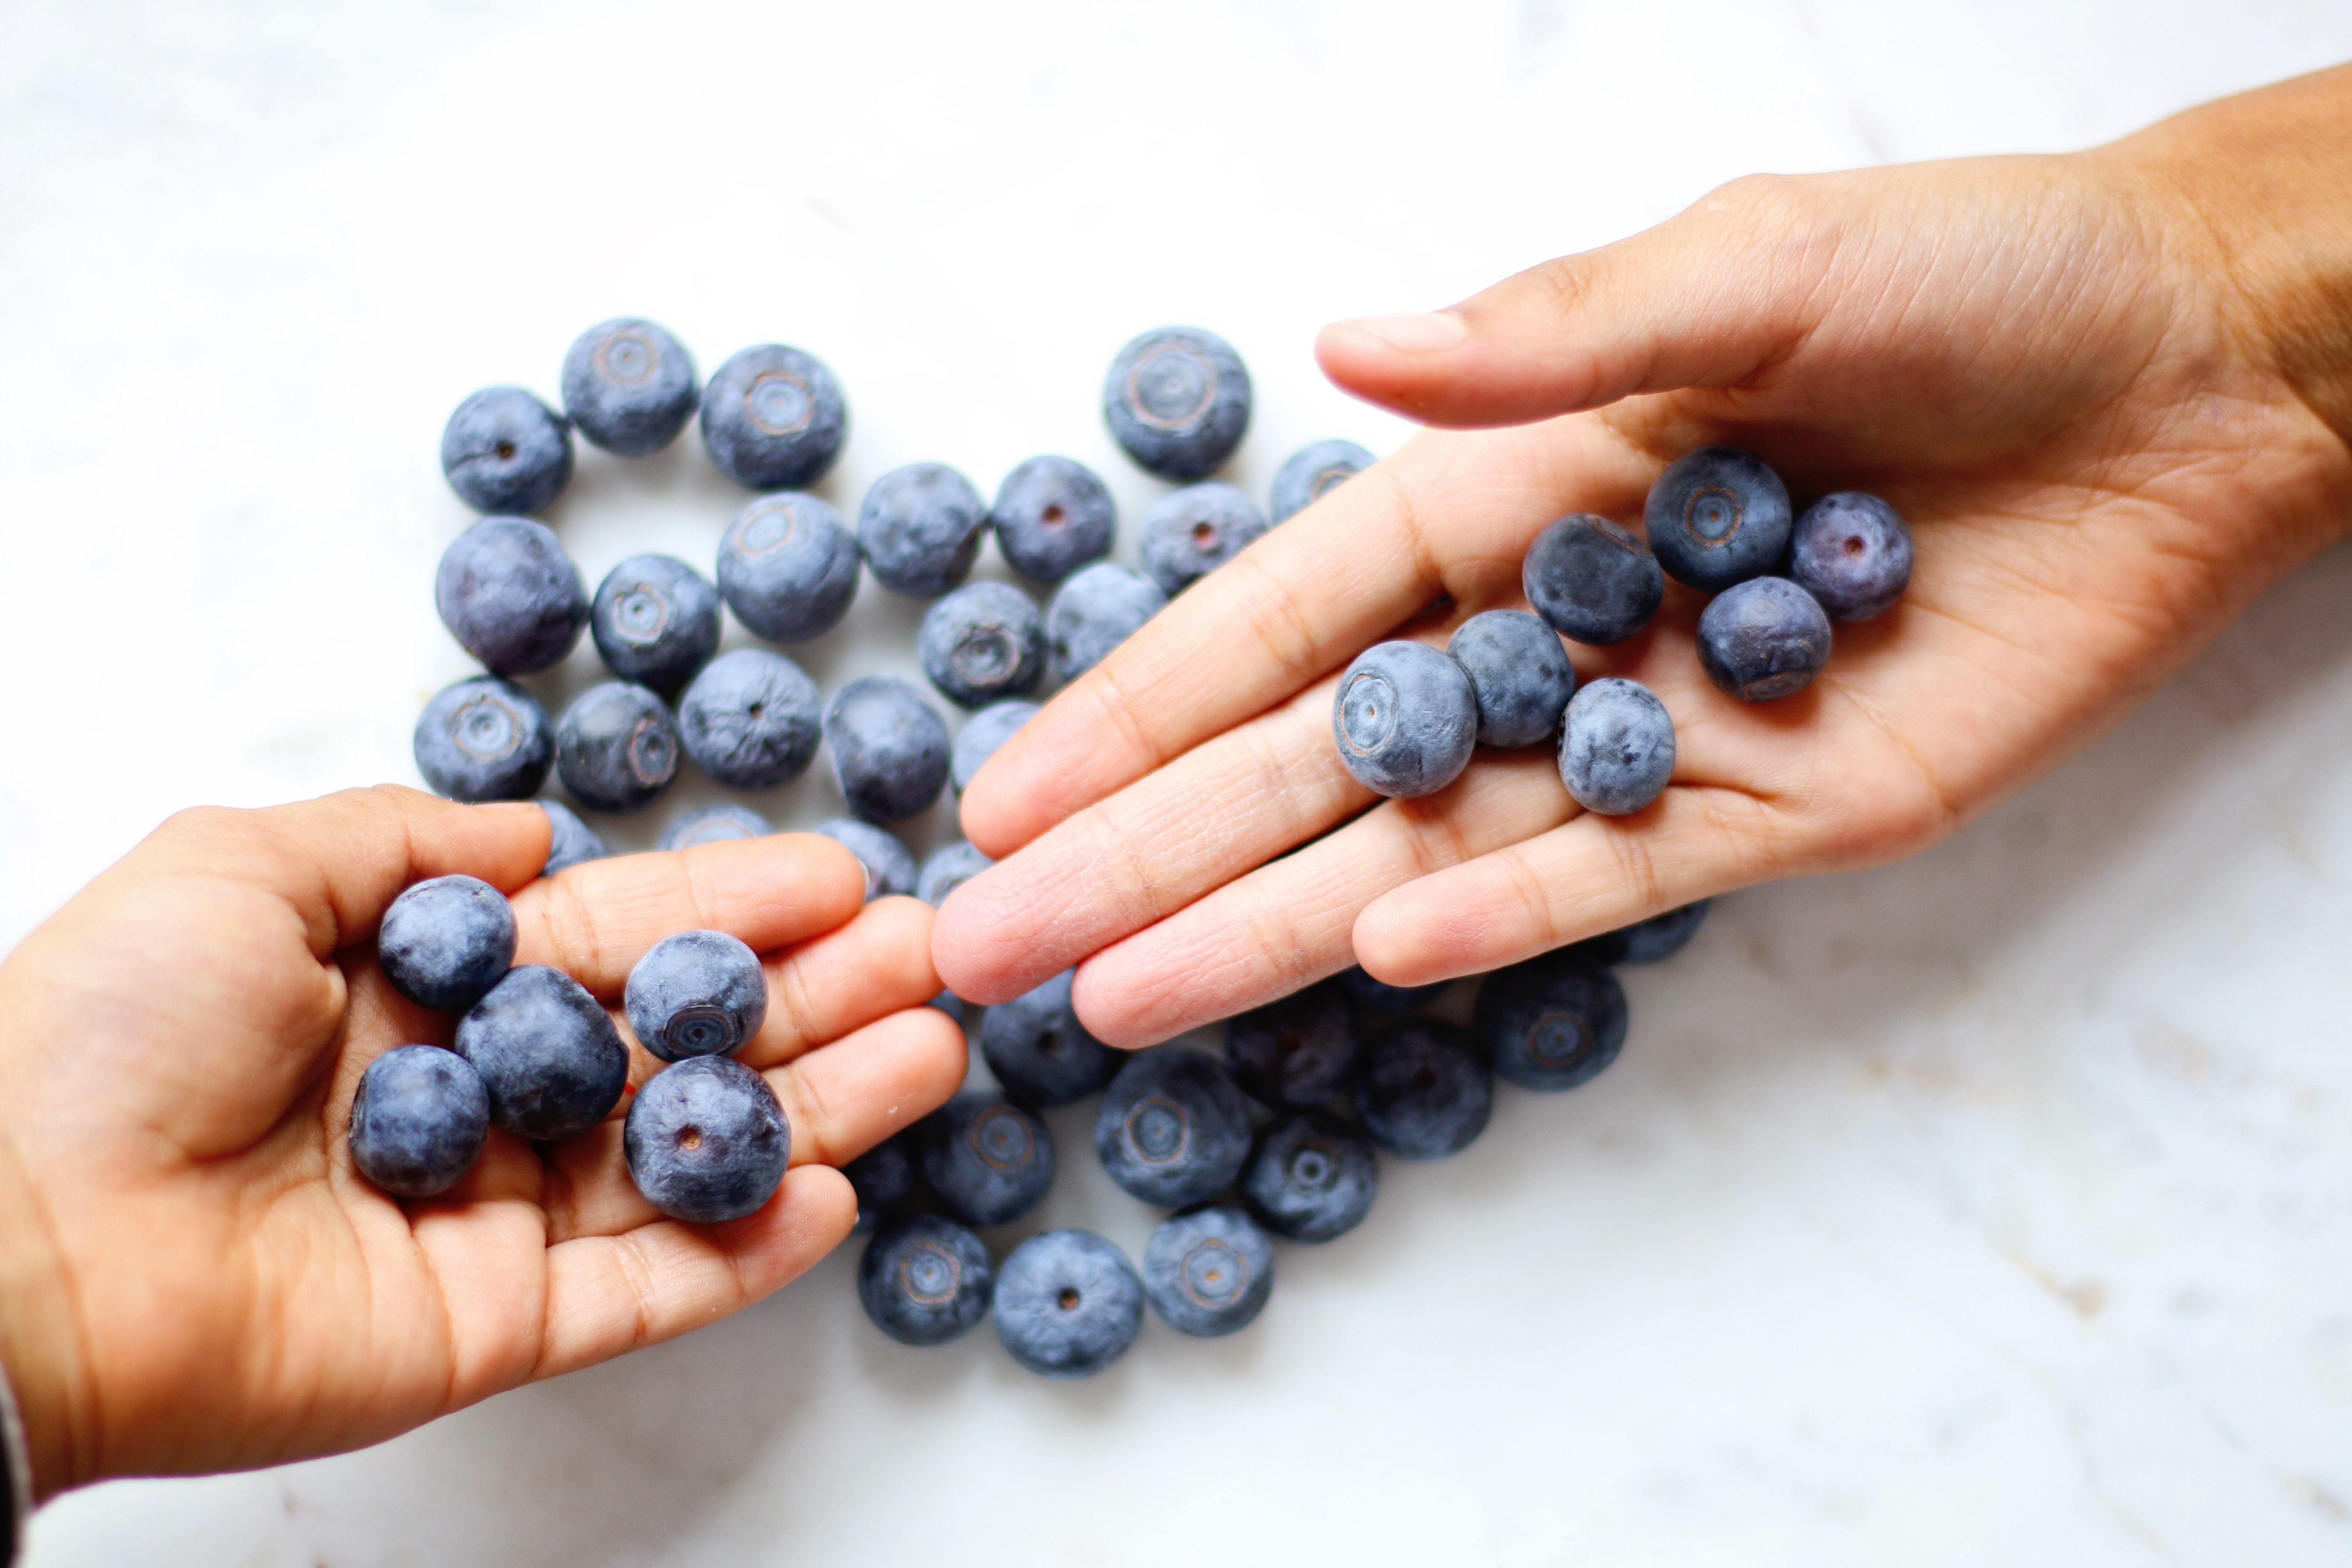 Two person's hand with blueberries on top photo